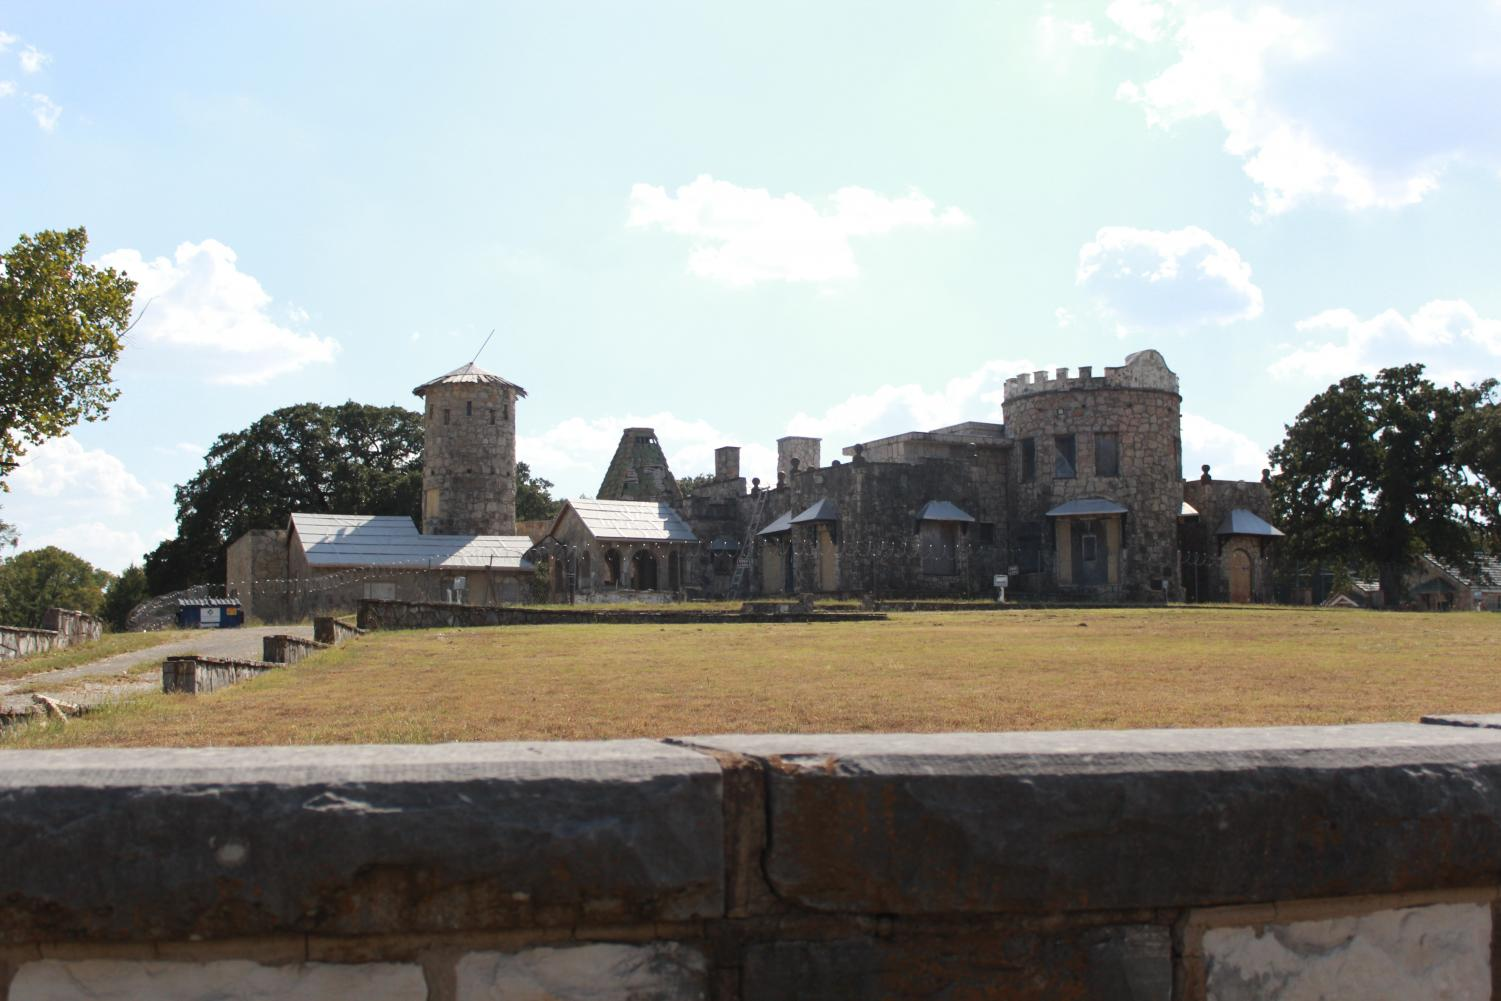 The Castle of Heron Bay overlooks Lake Worth, brimming with haunted history.